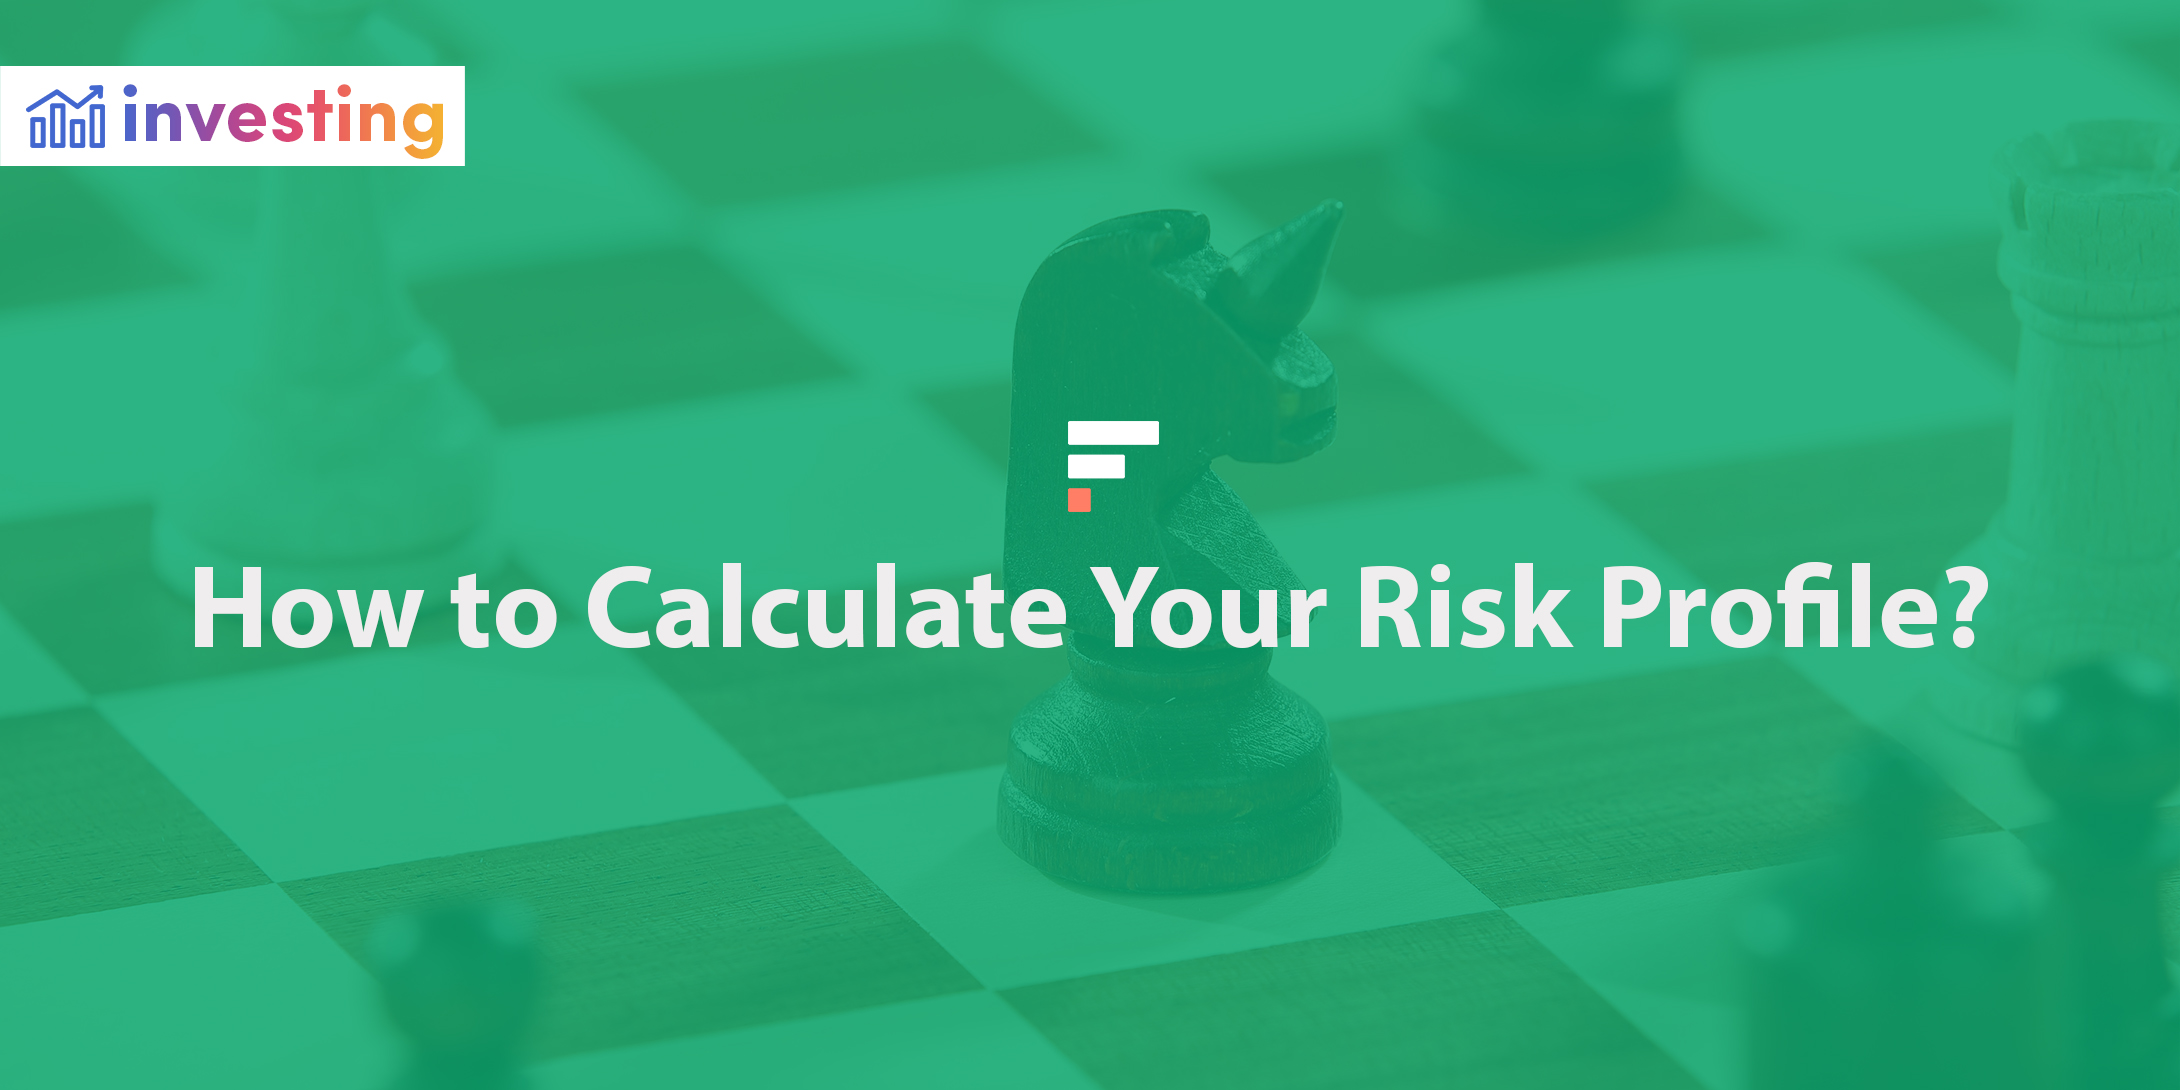 How to calculate your risk profile?